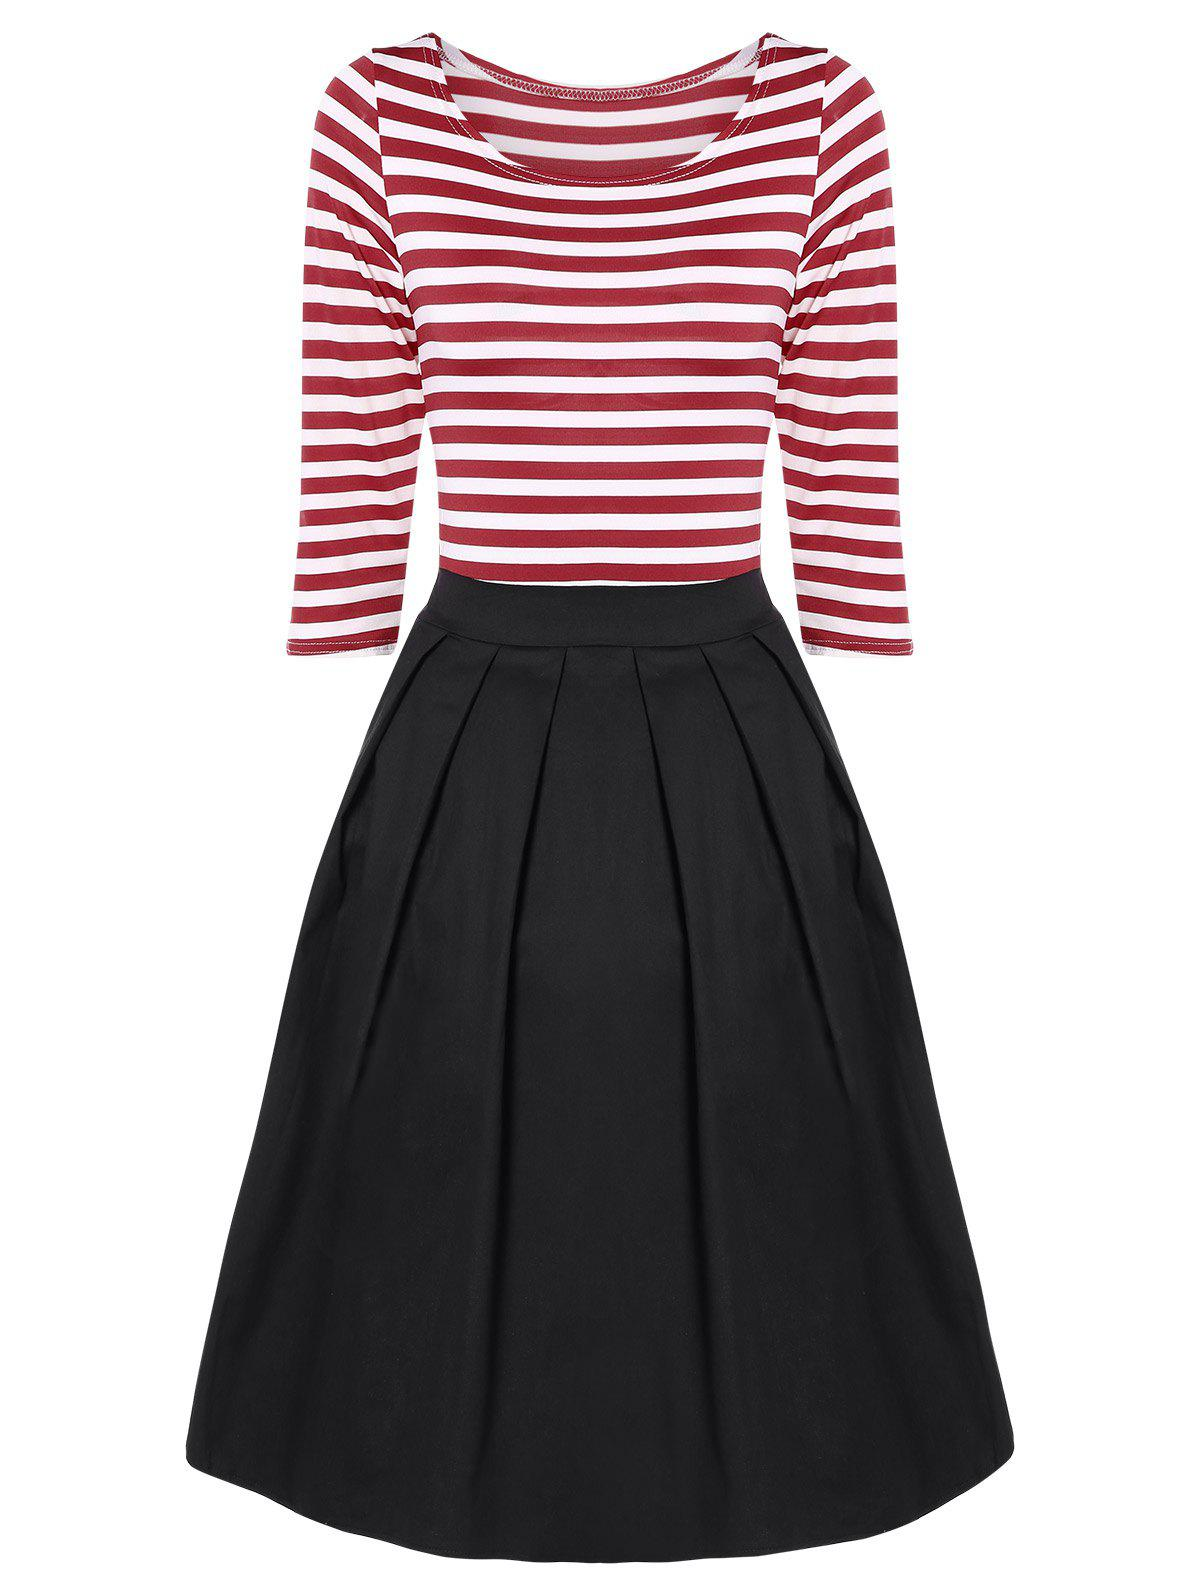 Striped Plissé A Dress Ligne - Rouge et Blanc 3XL